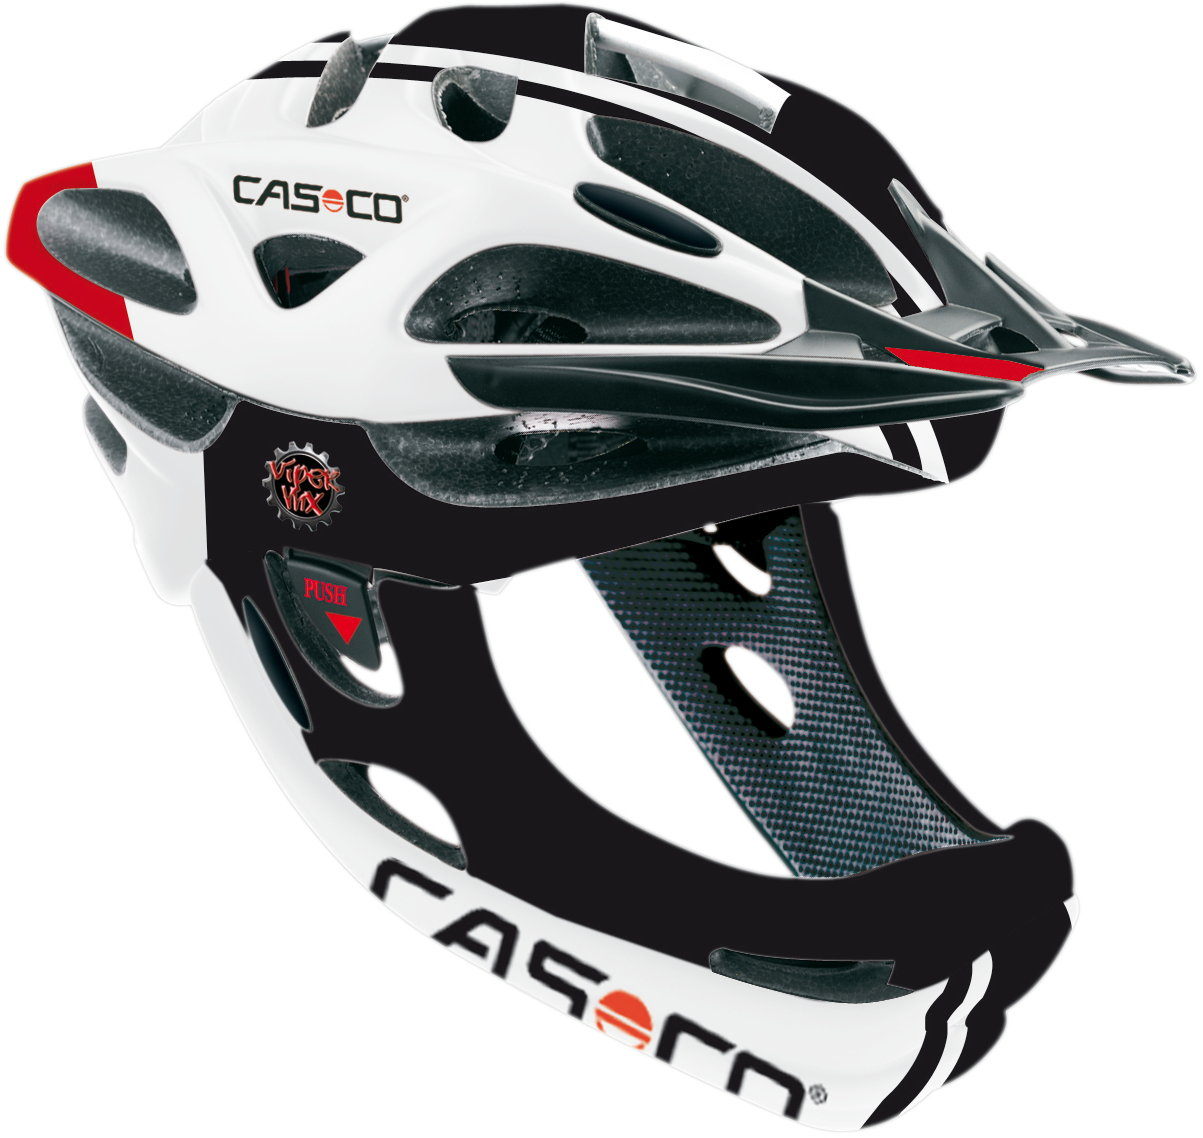 Casco_Viper_MX_Comp_P_1430